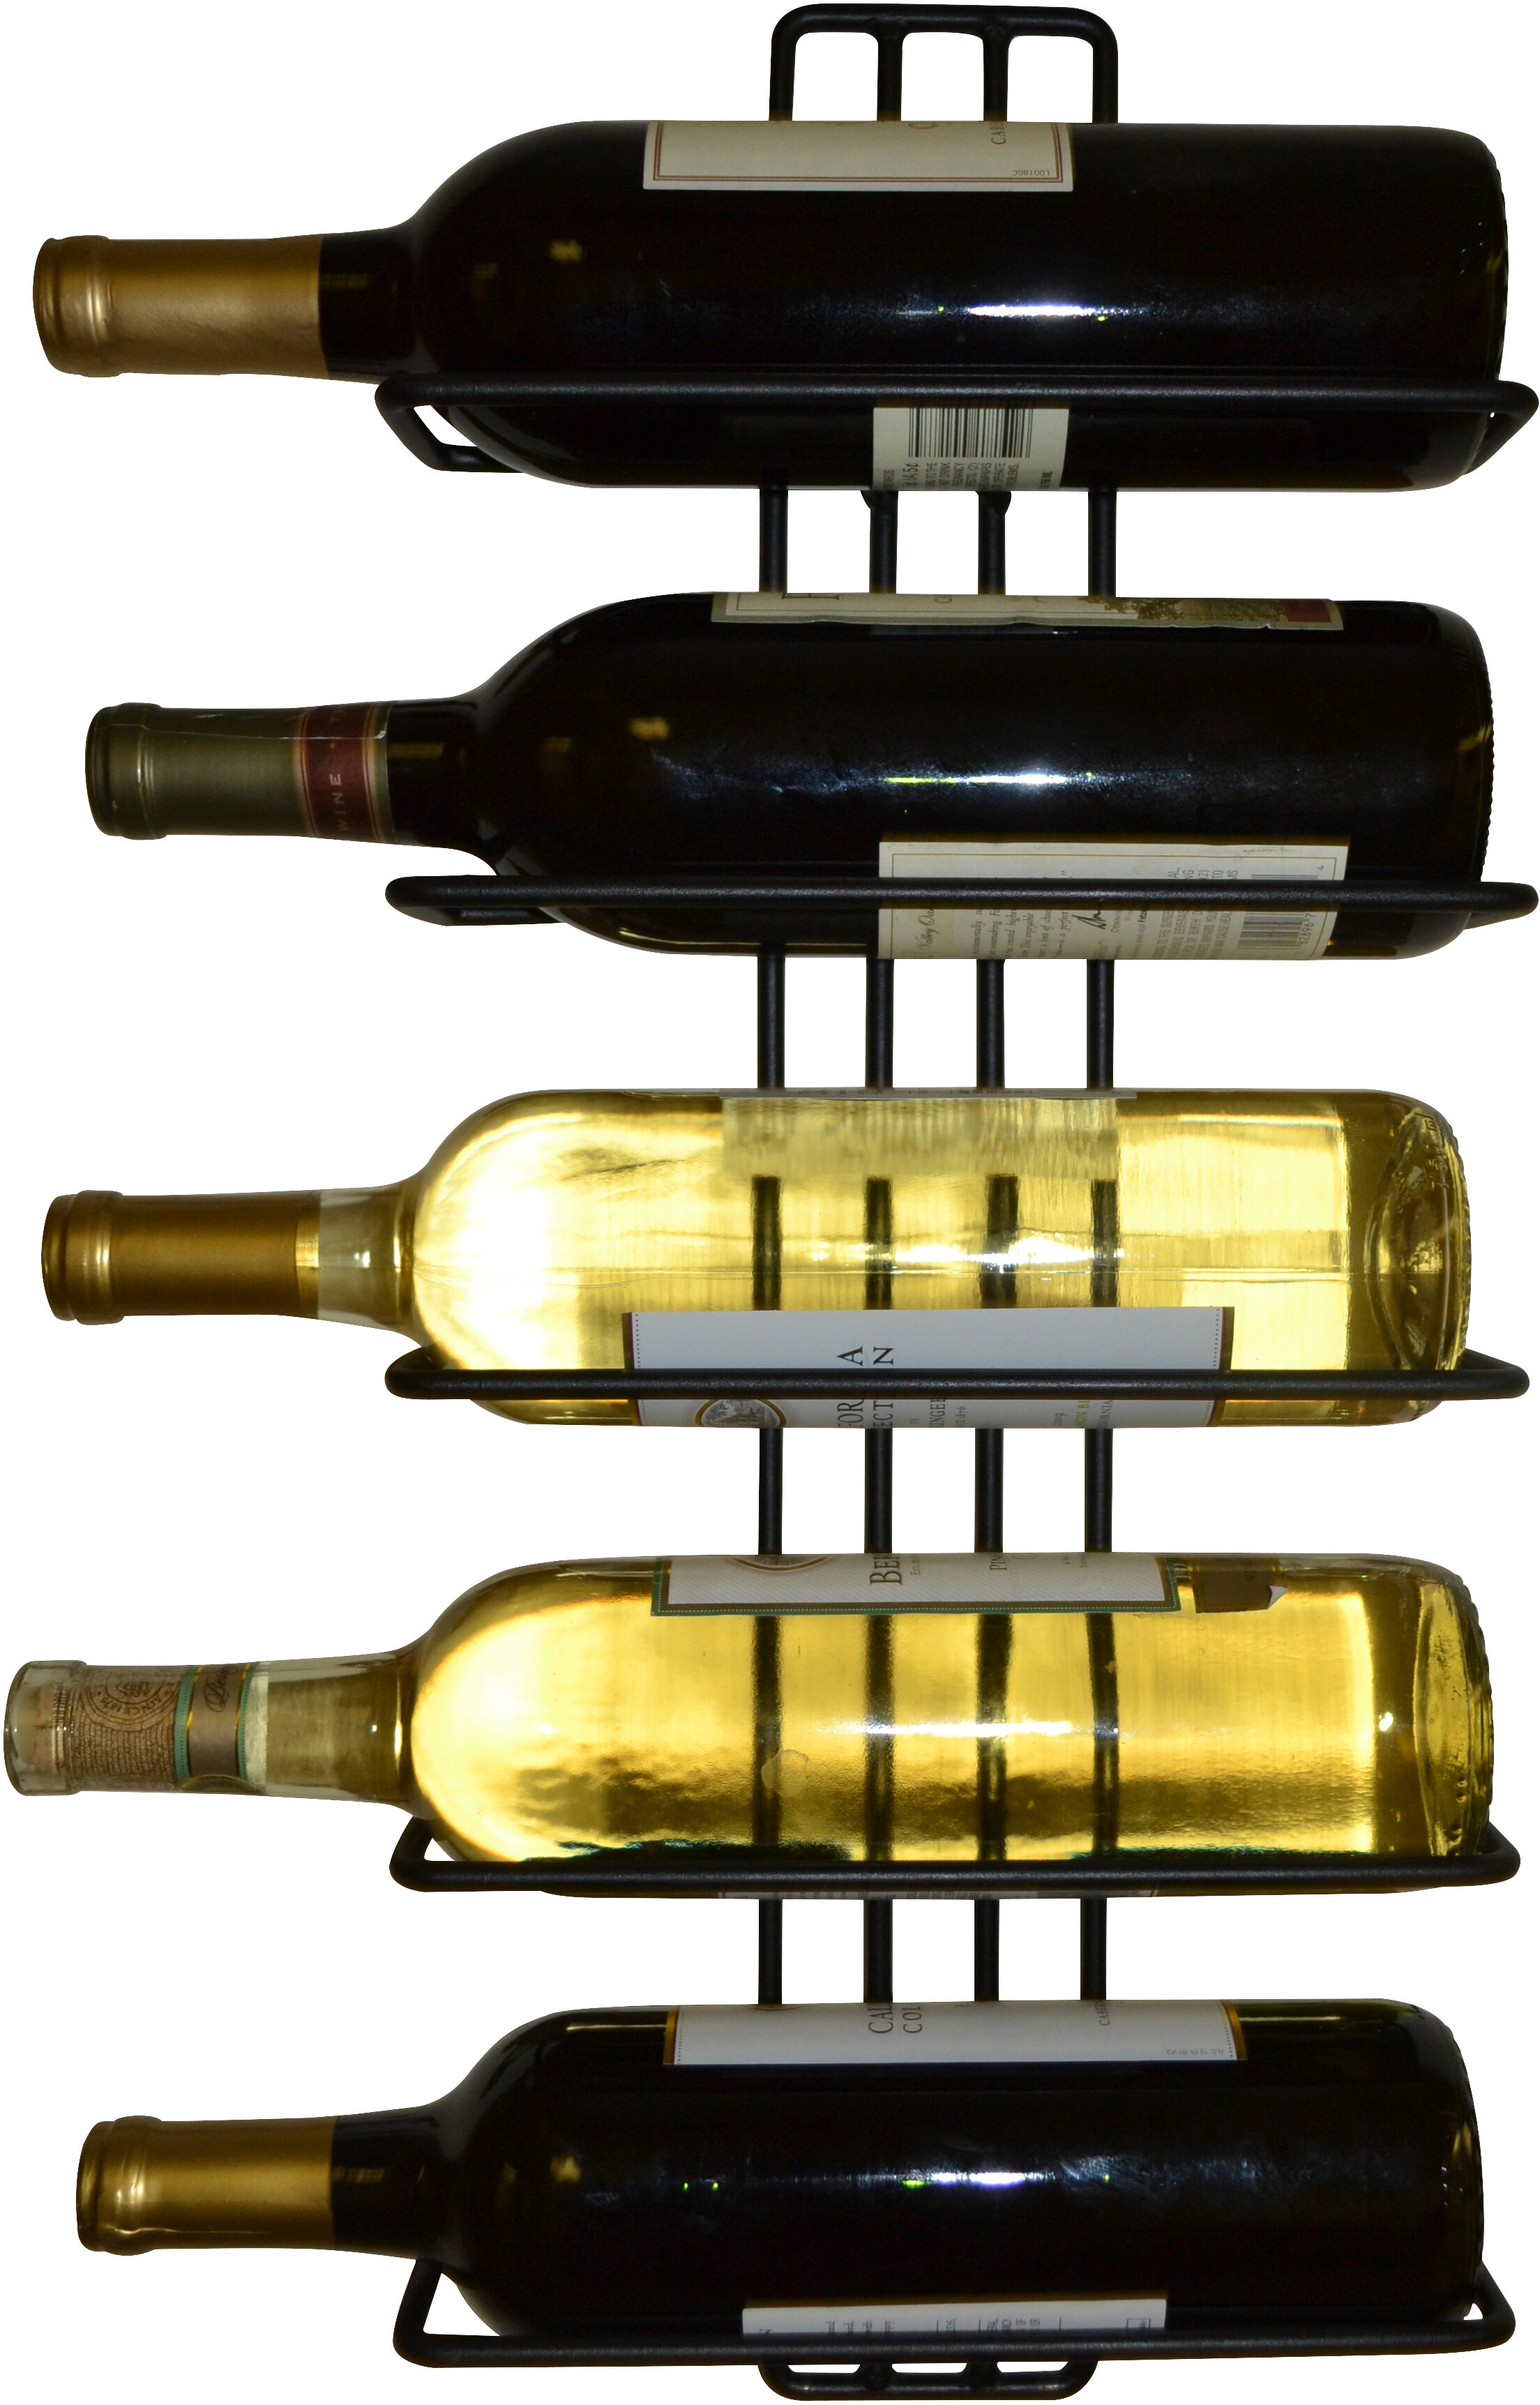 Attractive Decorative Wall Wine Rack Mold - Art & Wall Decor ...